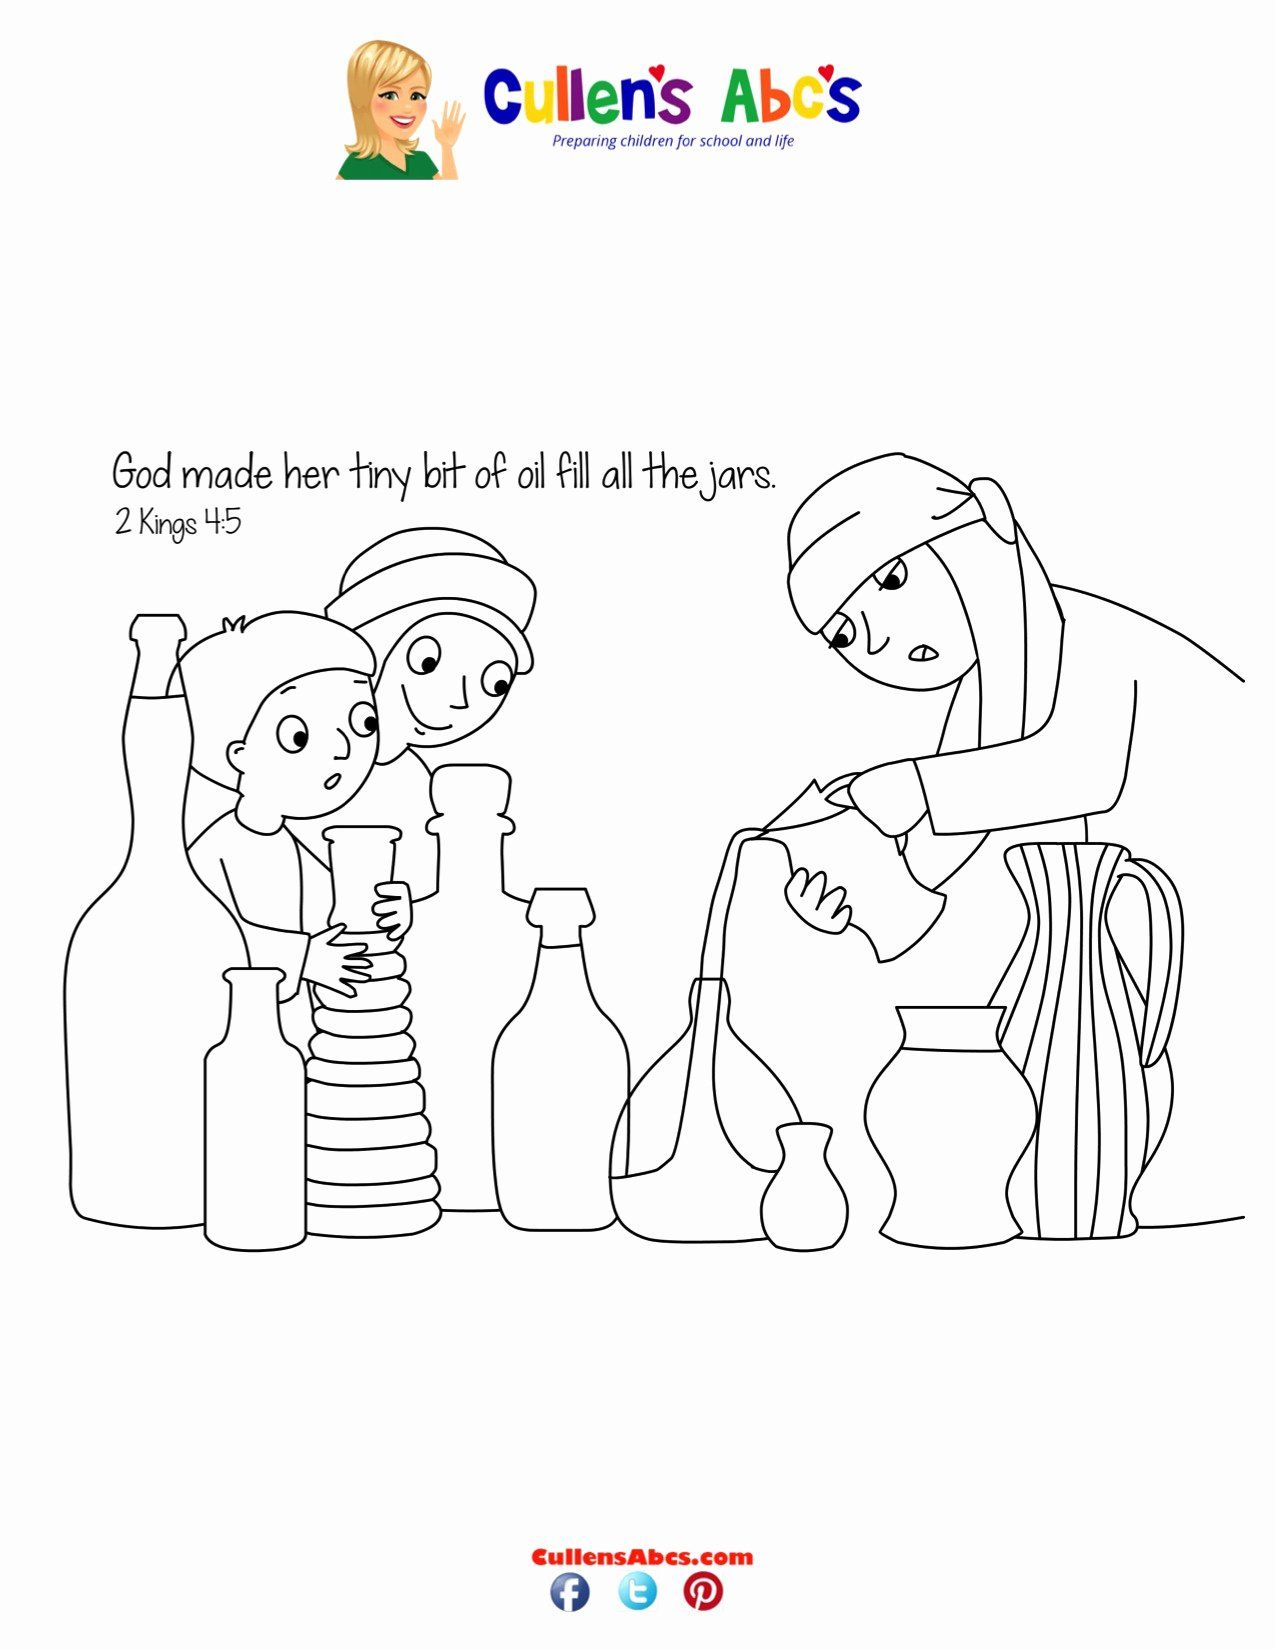 Pin By Pam Lanham On Bible Craft Ot Prophets Elisha Elijah And The Widow Bible Coloring Pages Coloring Pages